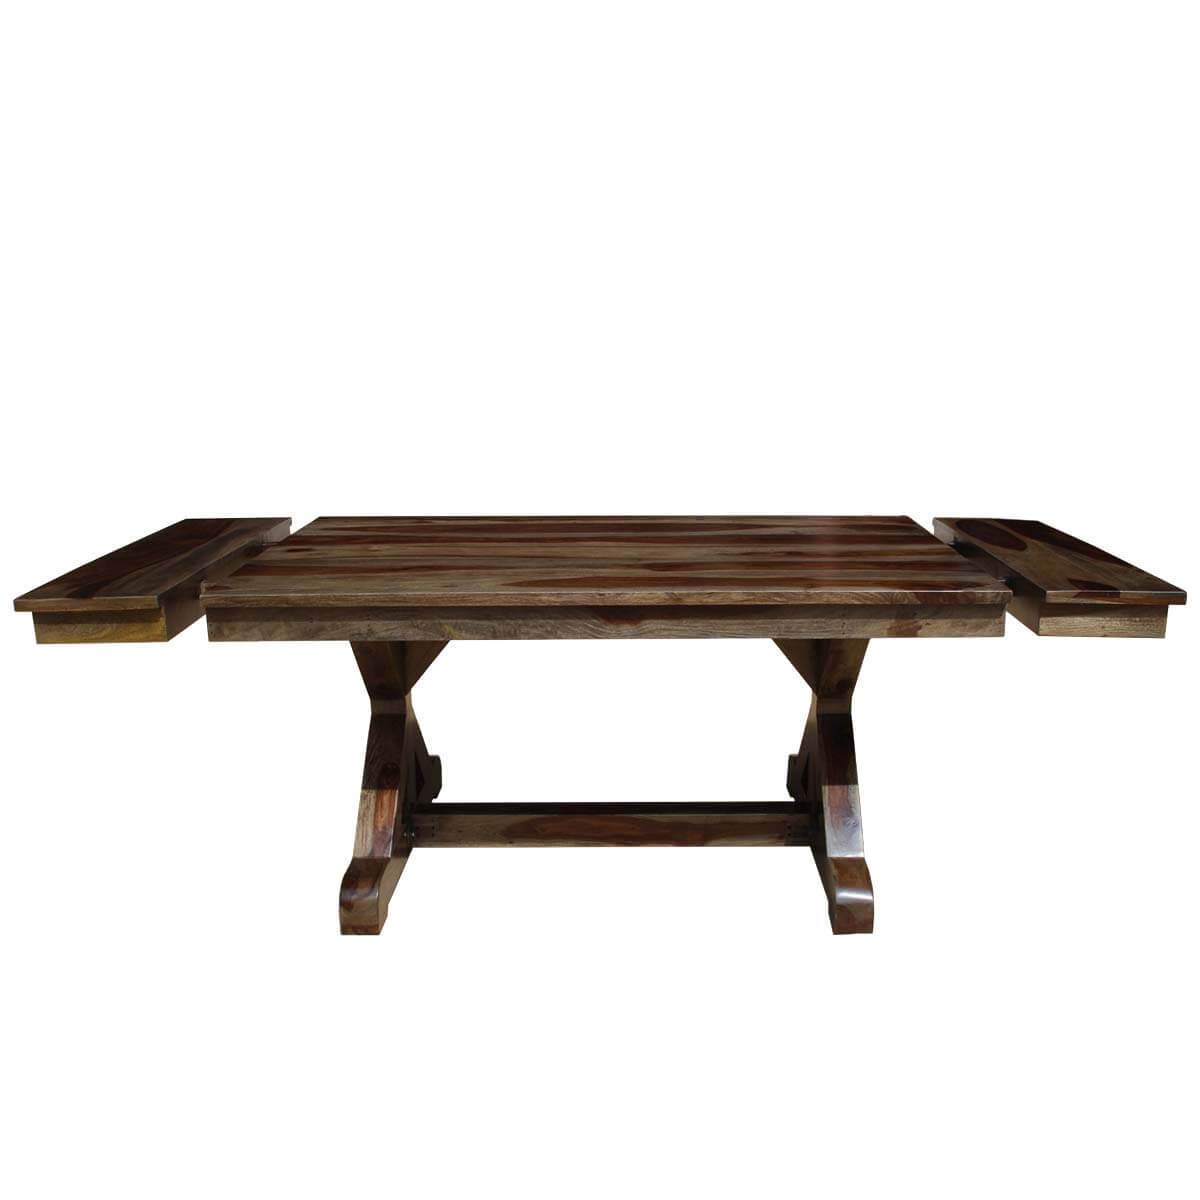 McKay X Base Solid Wood Rustic Dining Table w Extension : 44221 from www.sierralivingconcepts.com size 1200 x 1200 jpeg 67kB